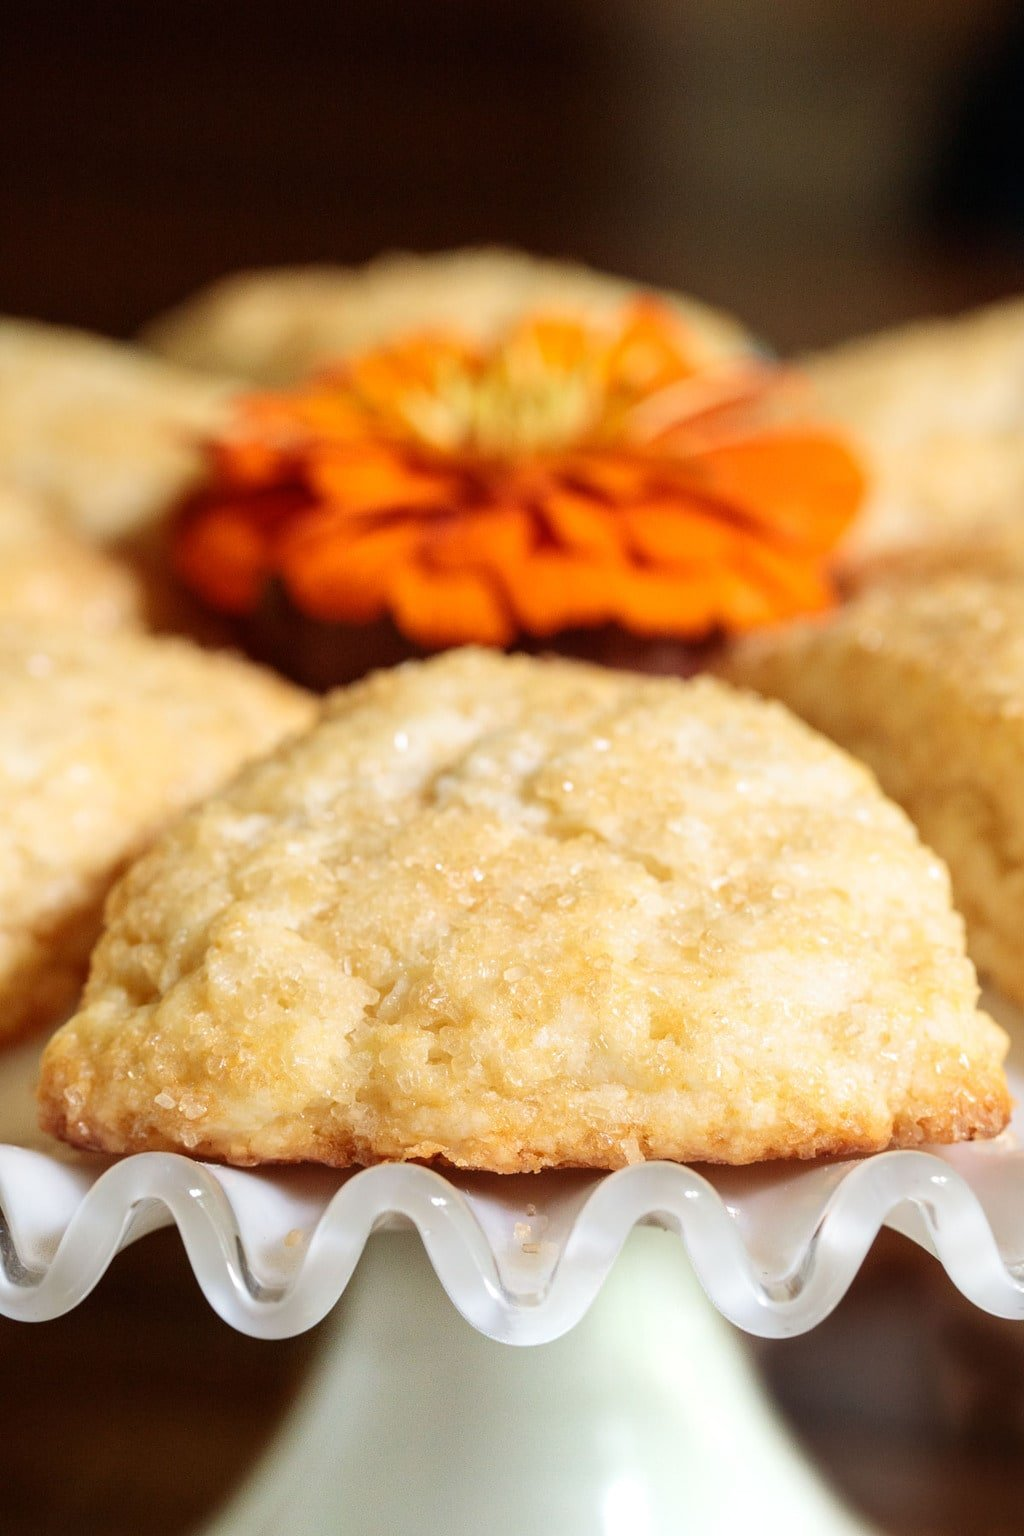 Close up photo of a Sugar Top Scone decorated with an orange flower in the center of the plate.